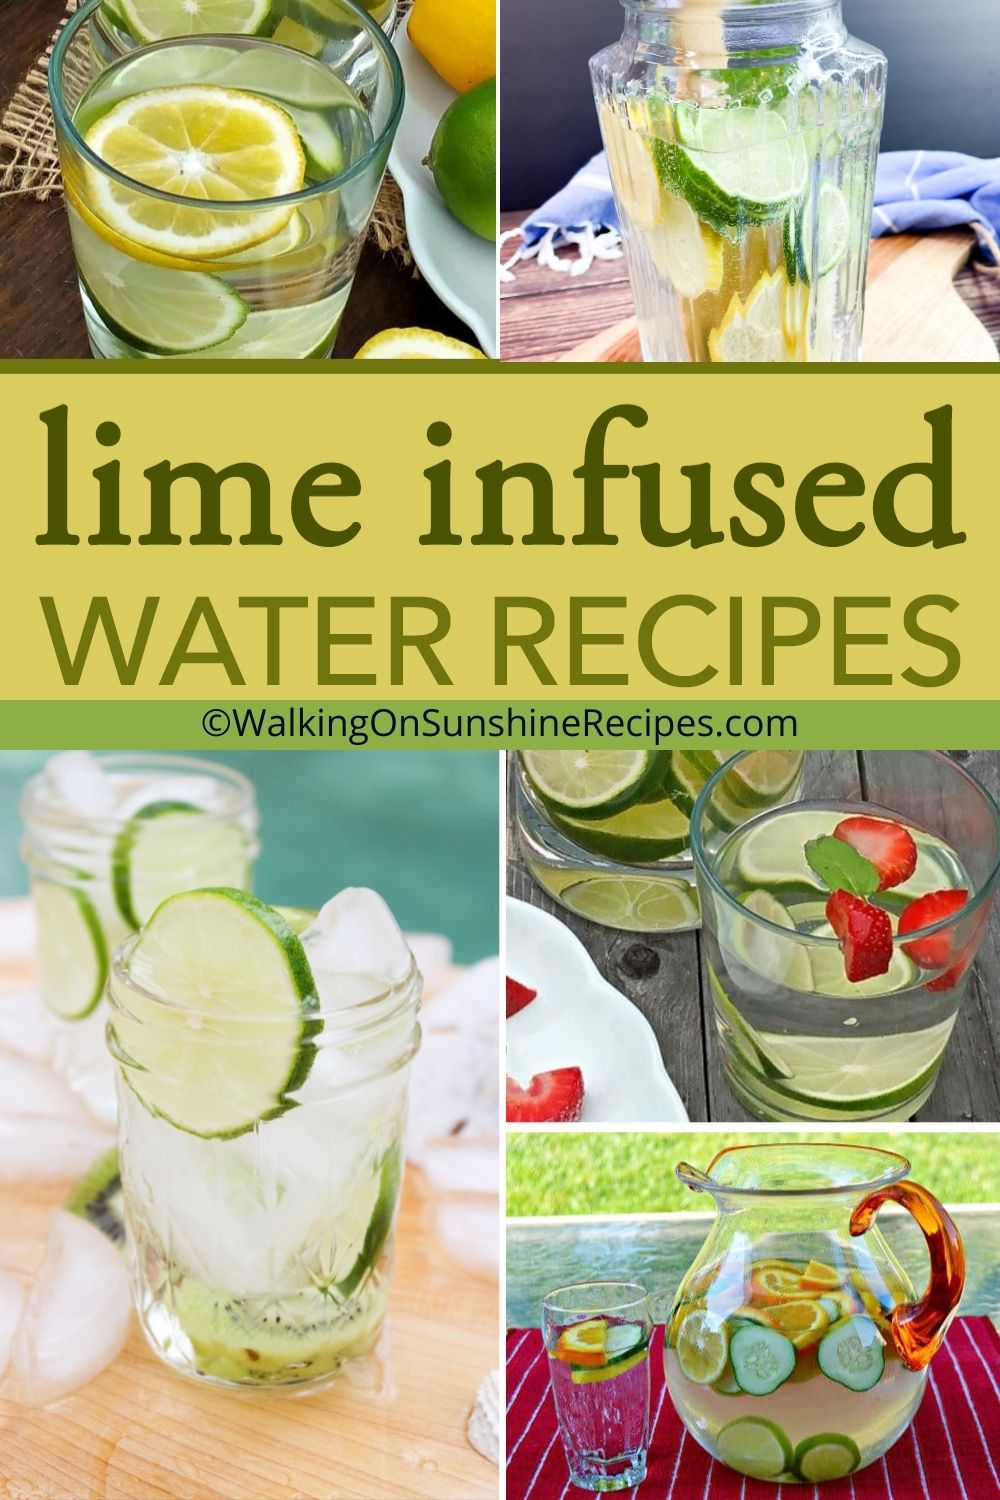 A collection of lime infused water recipes.